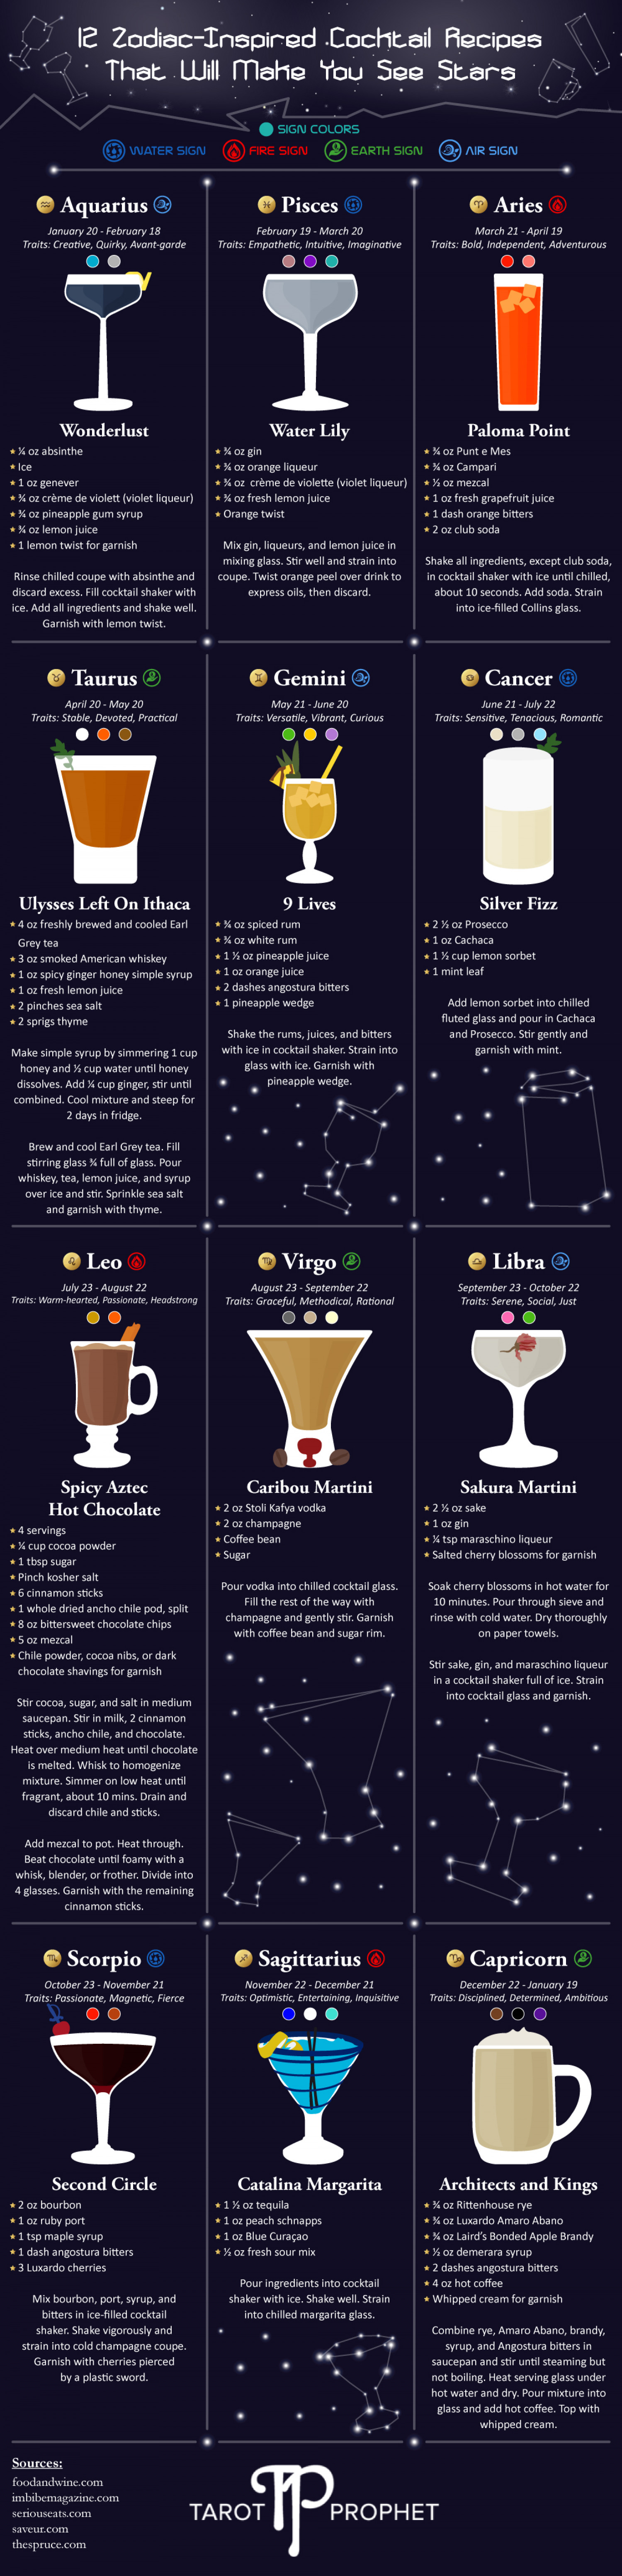 12 Zodiac-Inspired Cocktail Recipes That Will Make You See Stars Infographic